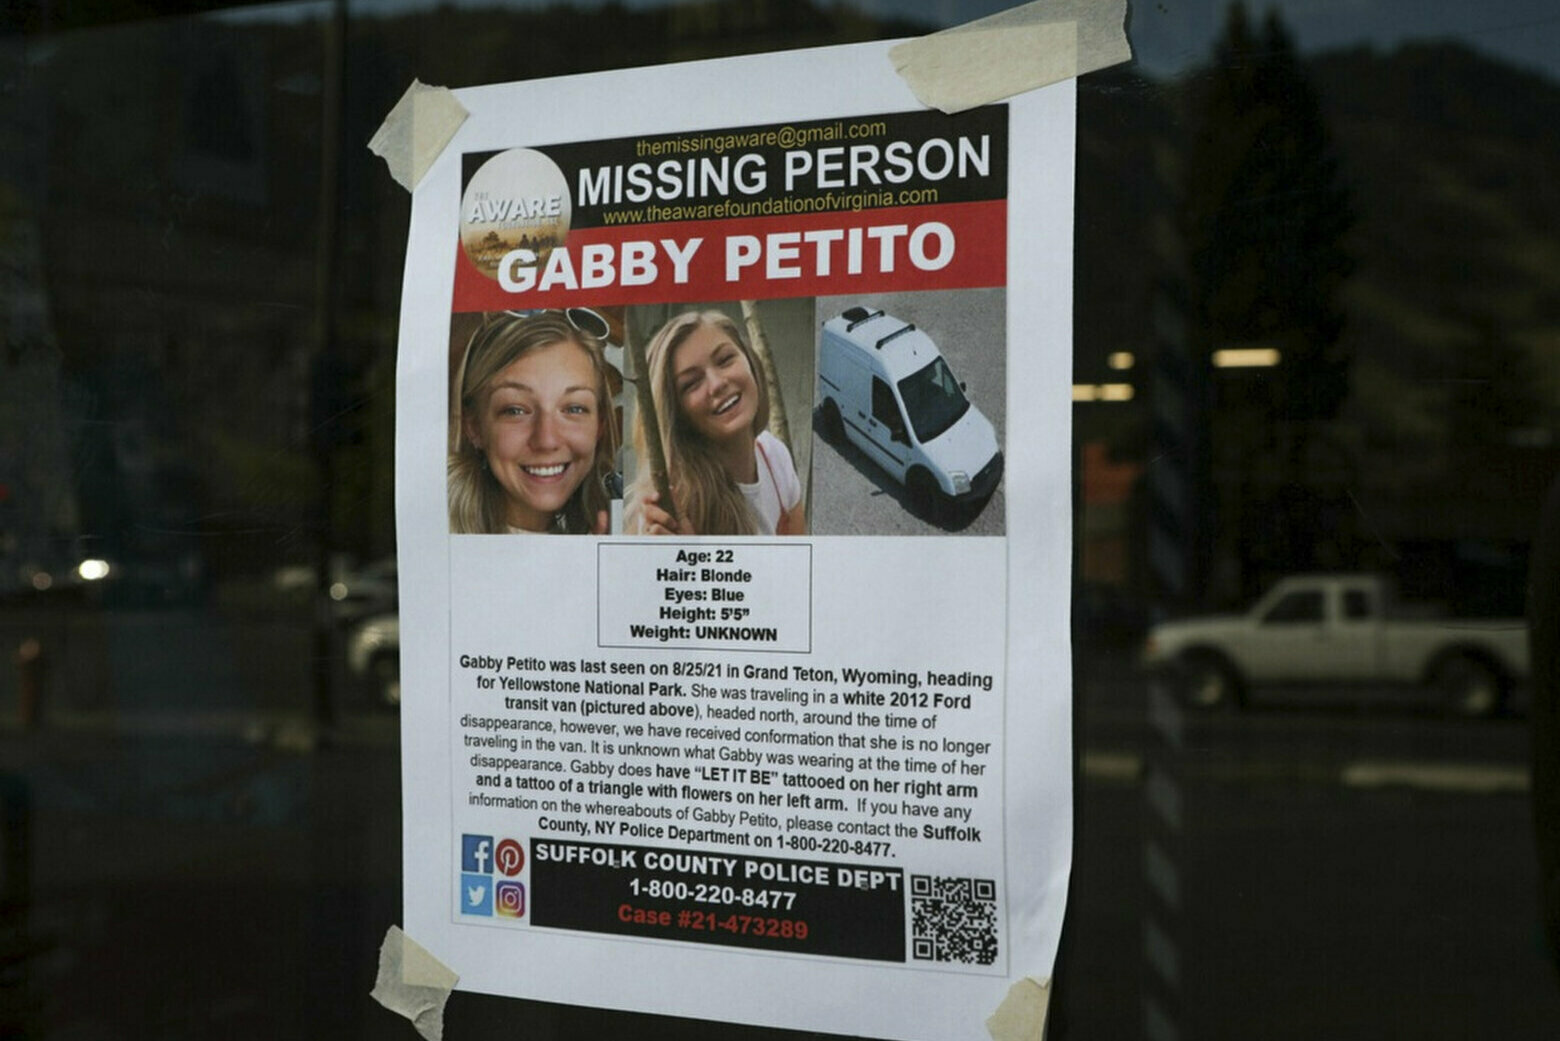 Gabby Petito case rekindles debate about selective coverage, consumption of missing persons stories - WTOP